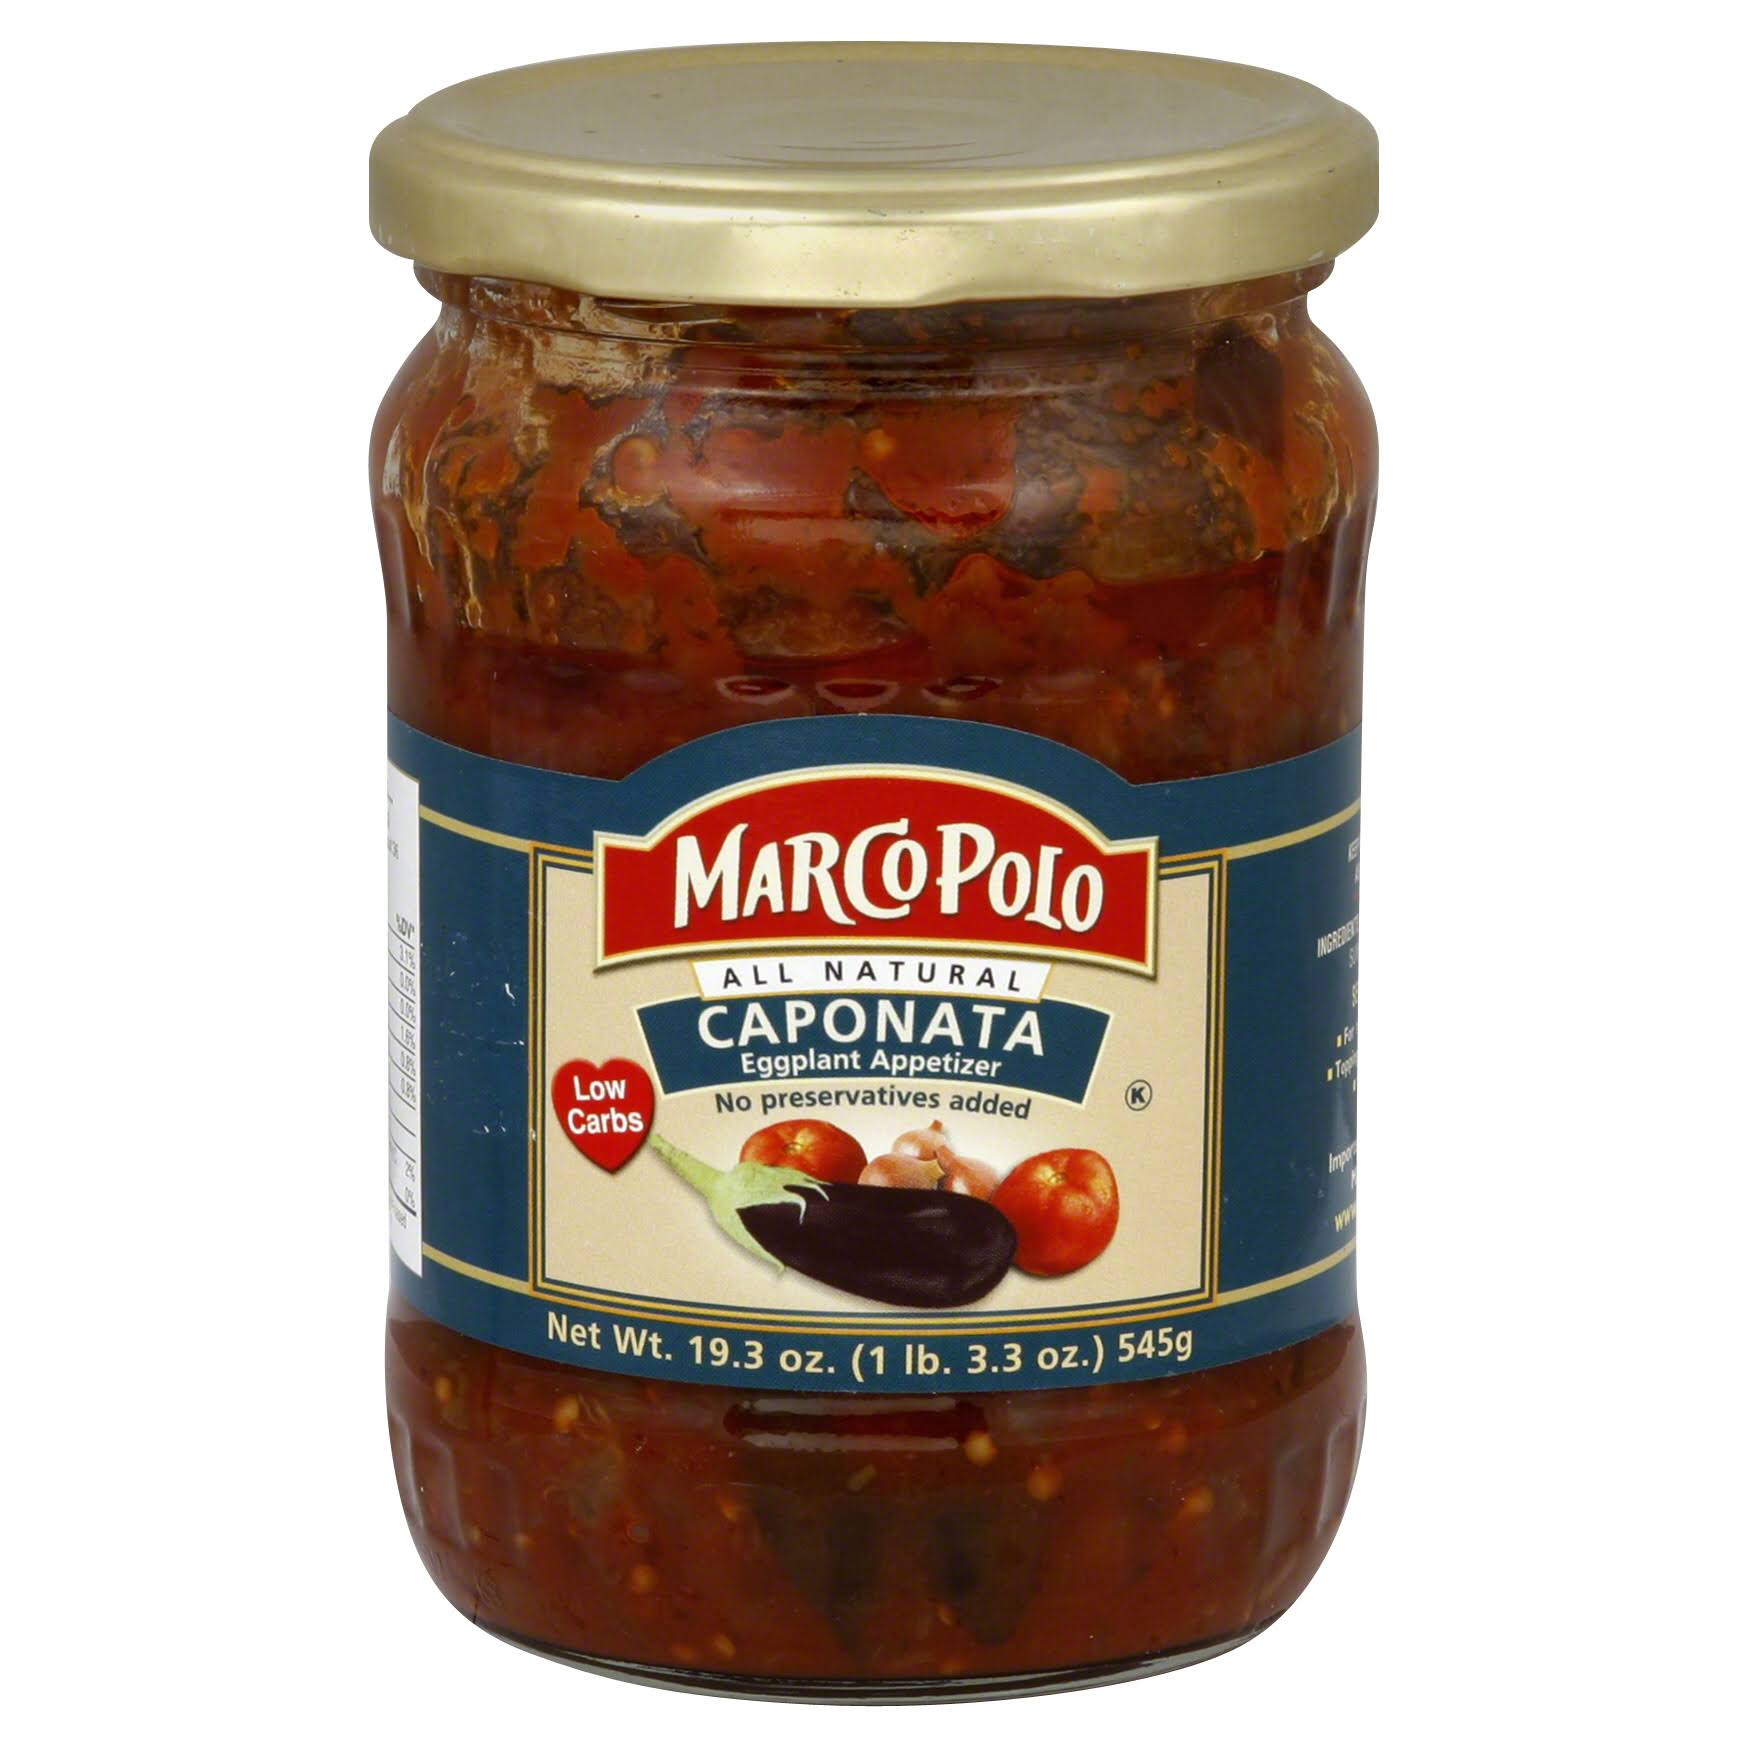 Marco Polo All Natural Caponata Eggplant Appetizer - 545g